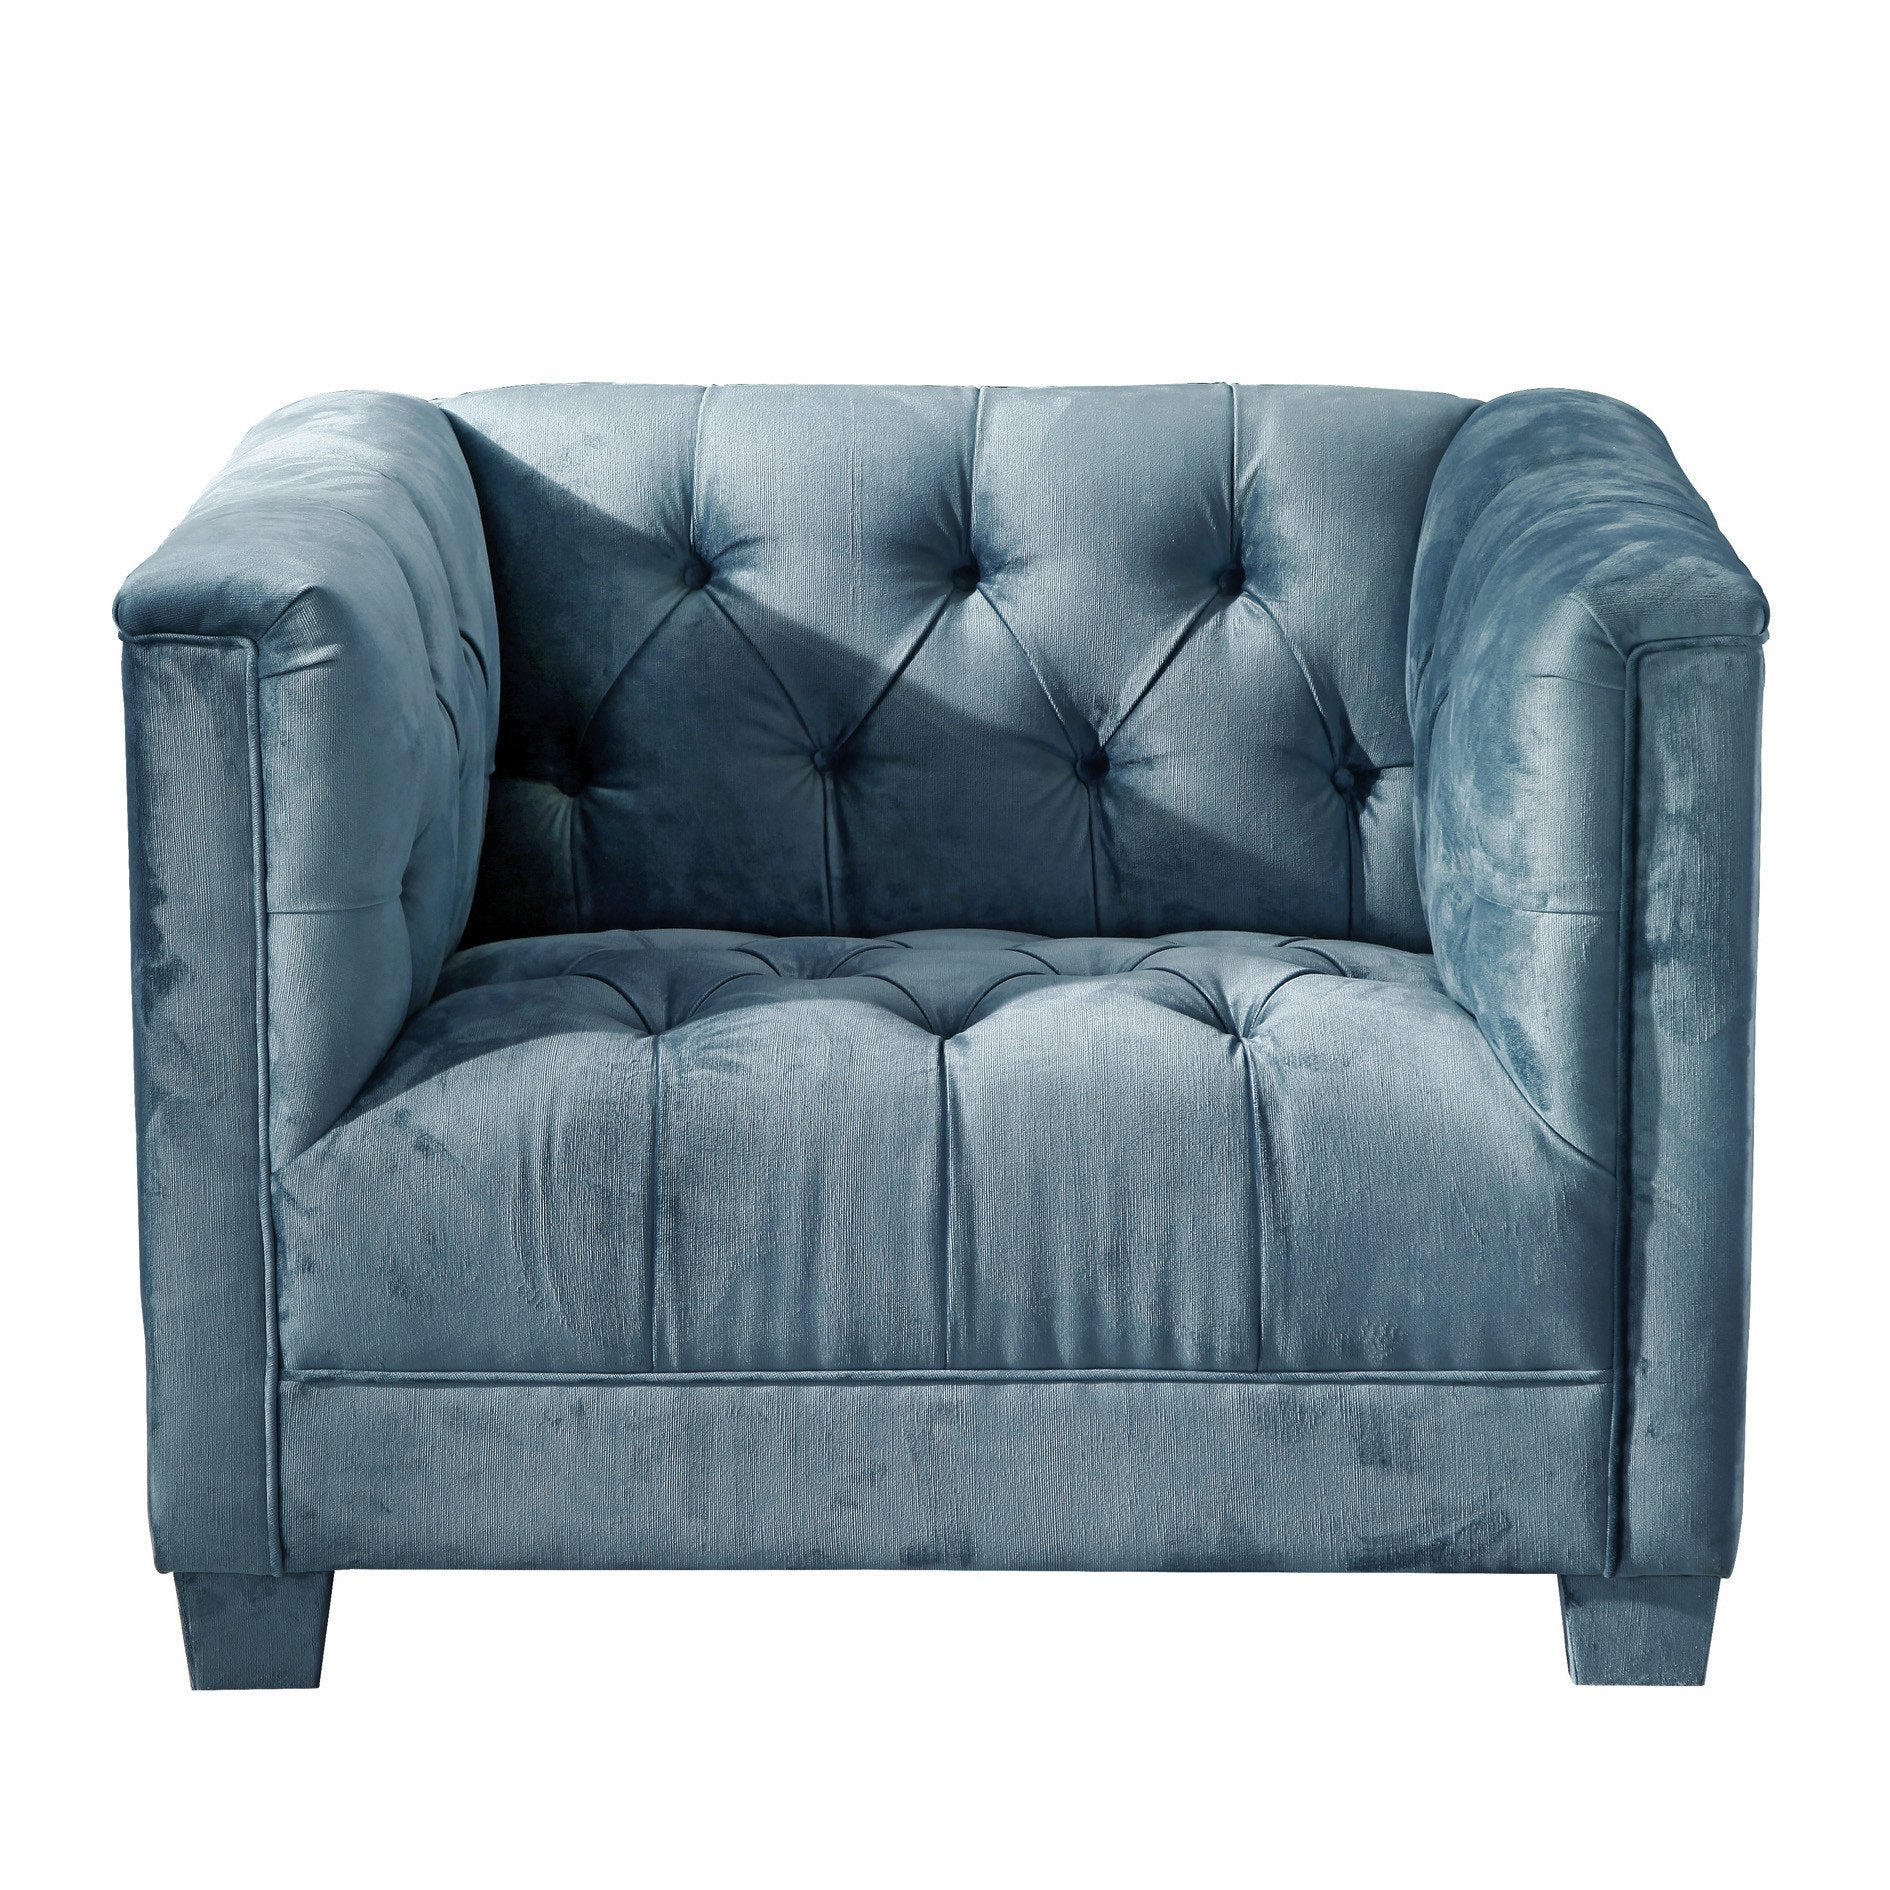 Luxor 2 Seater Teal